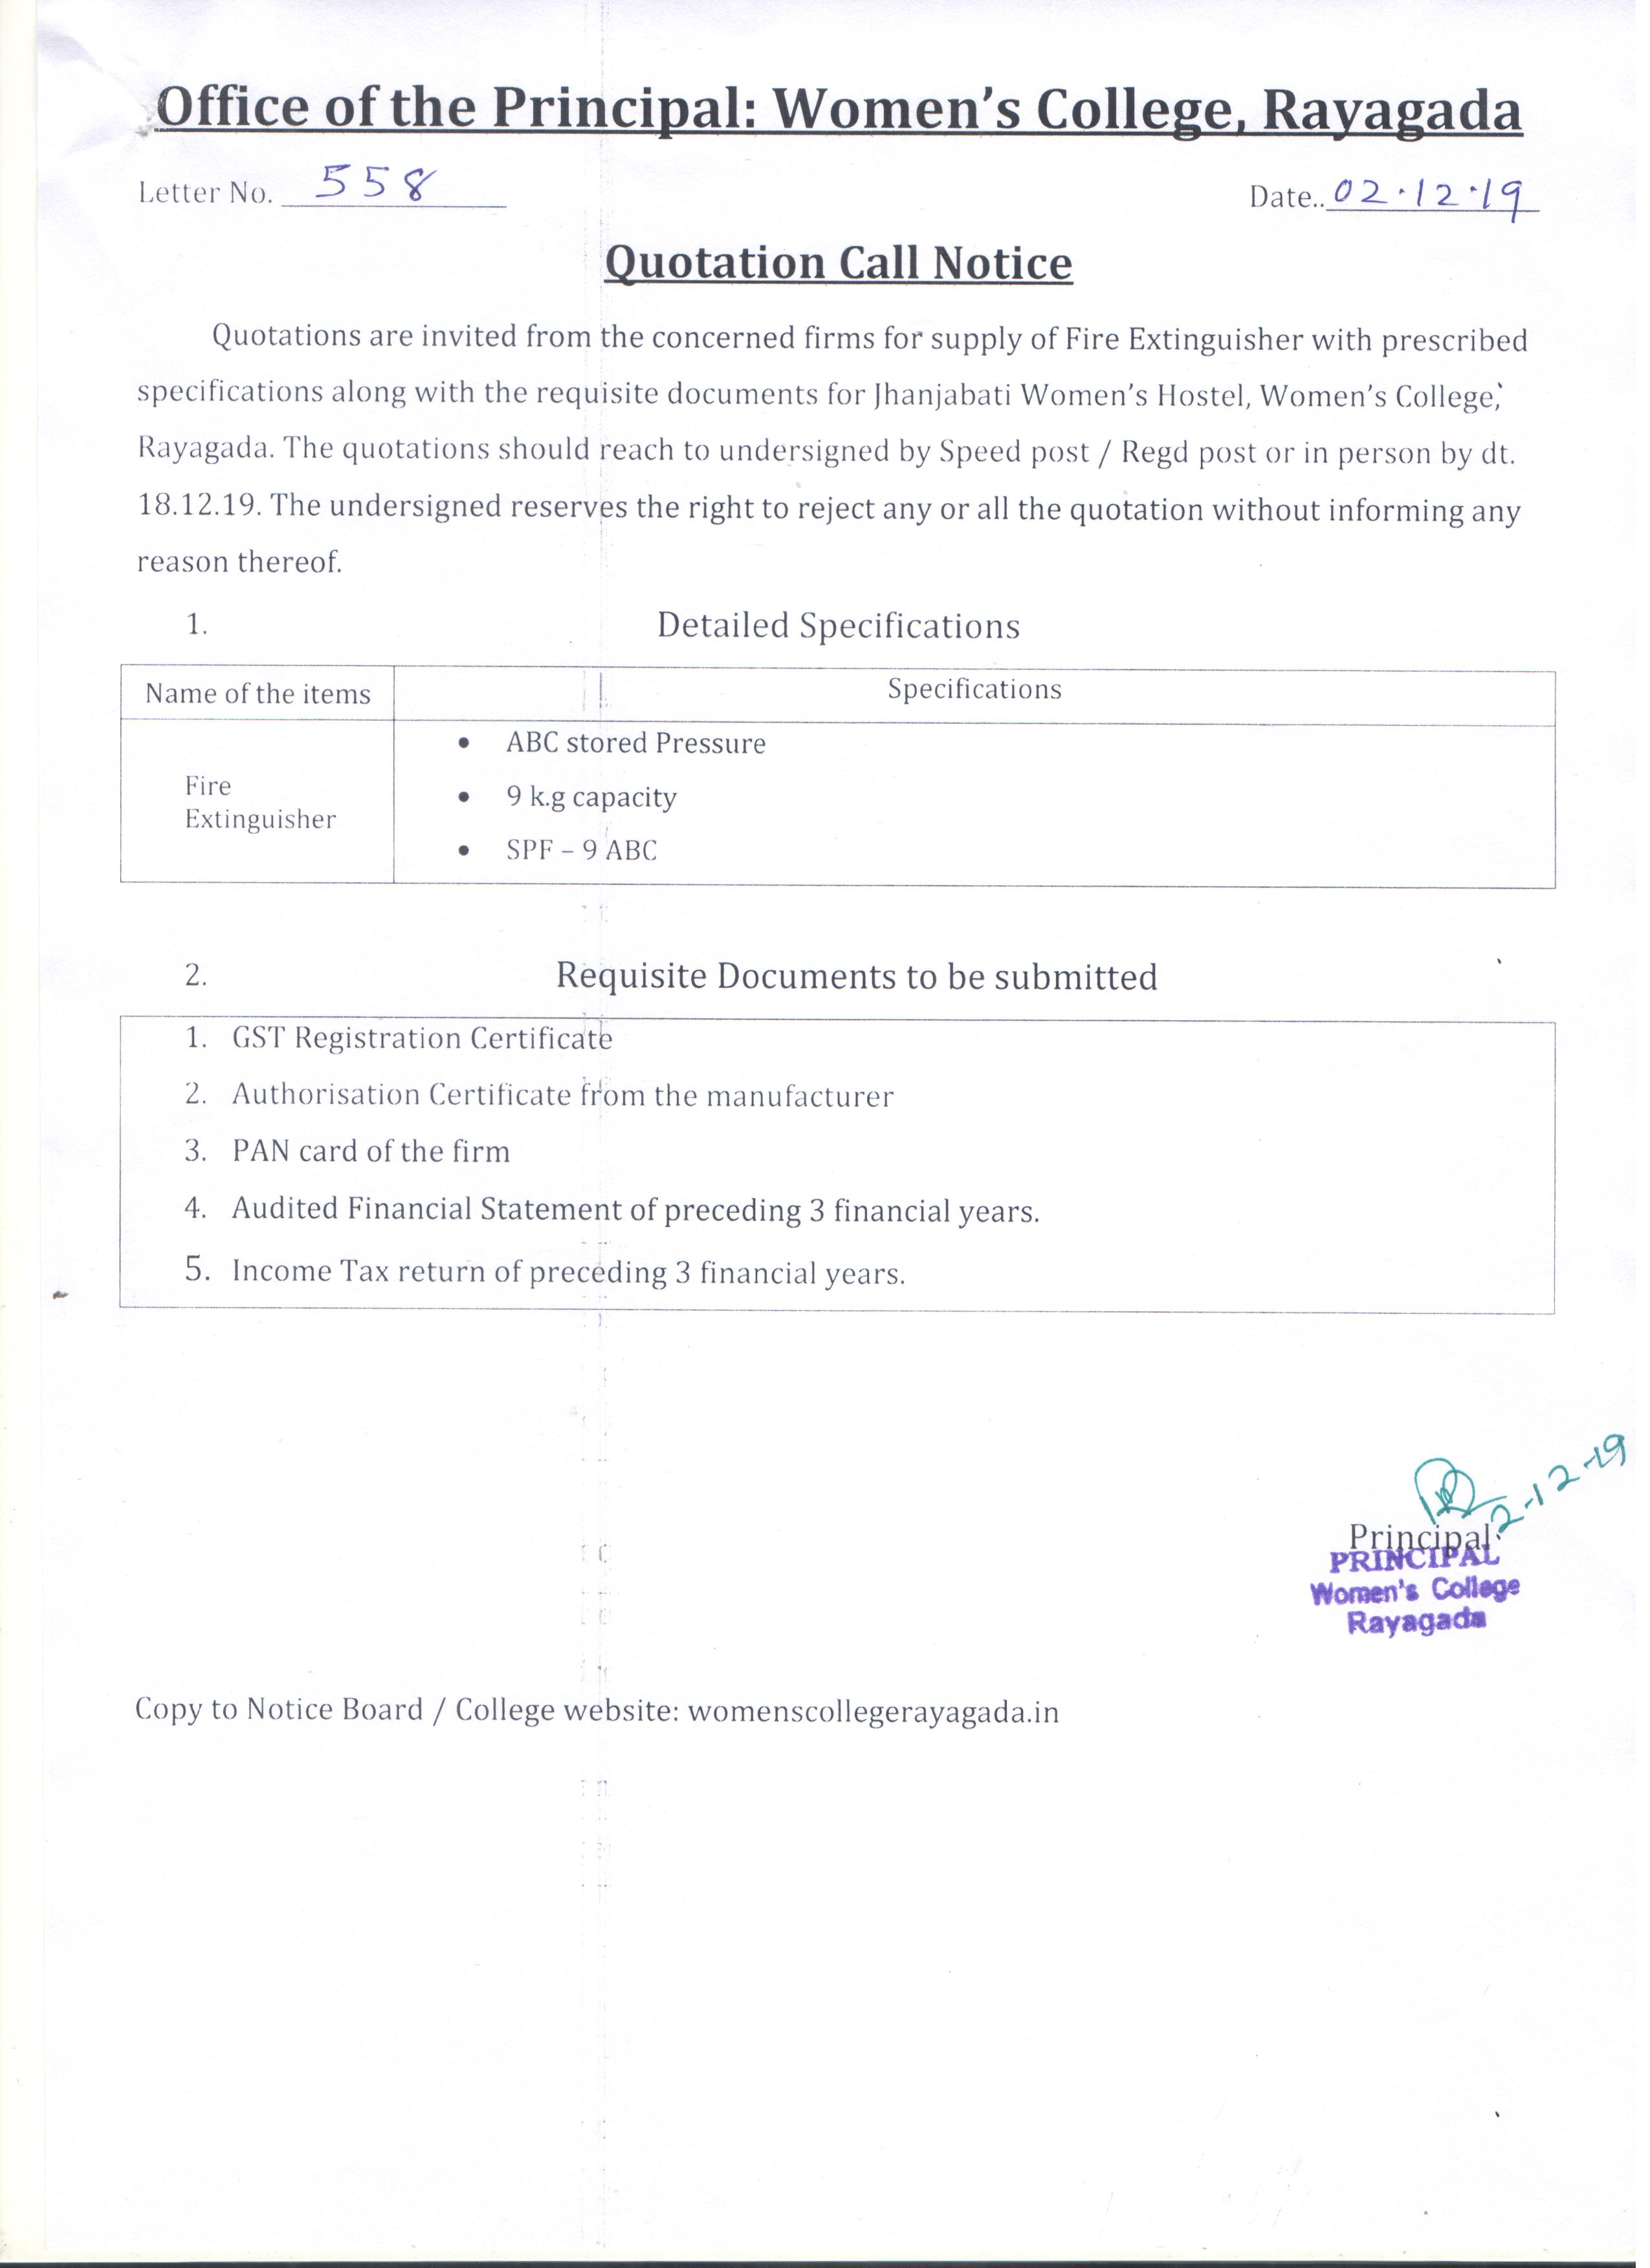 quotation call notice(Fire Extinguisher)